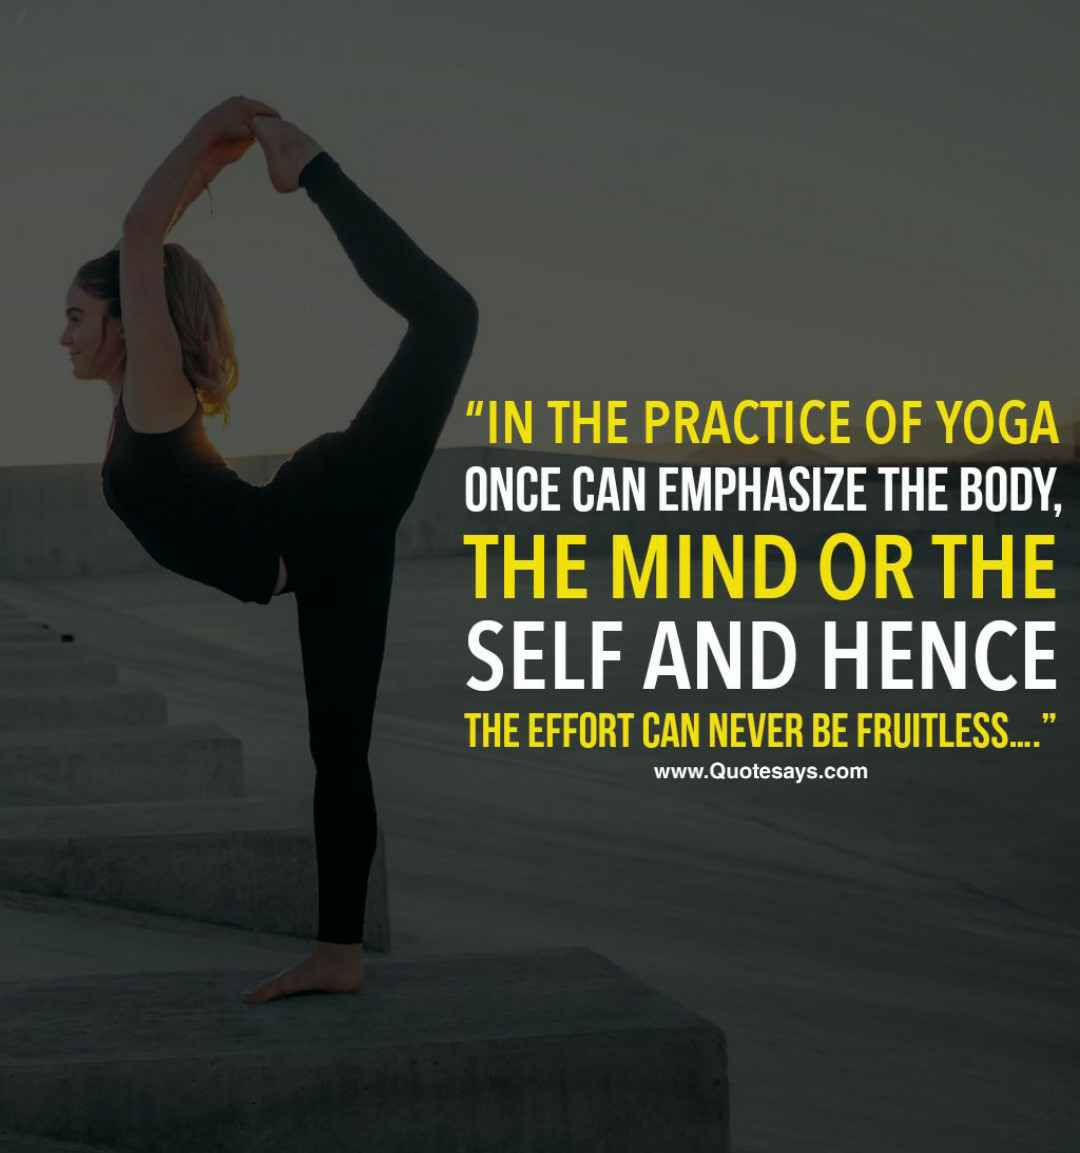 Yoga quotes, inspirational yoga quotes